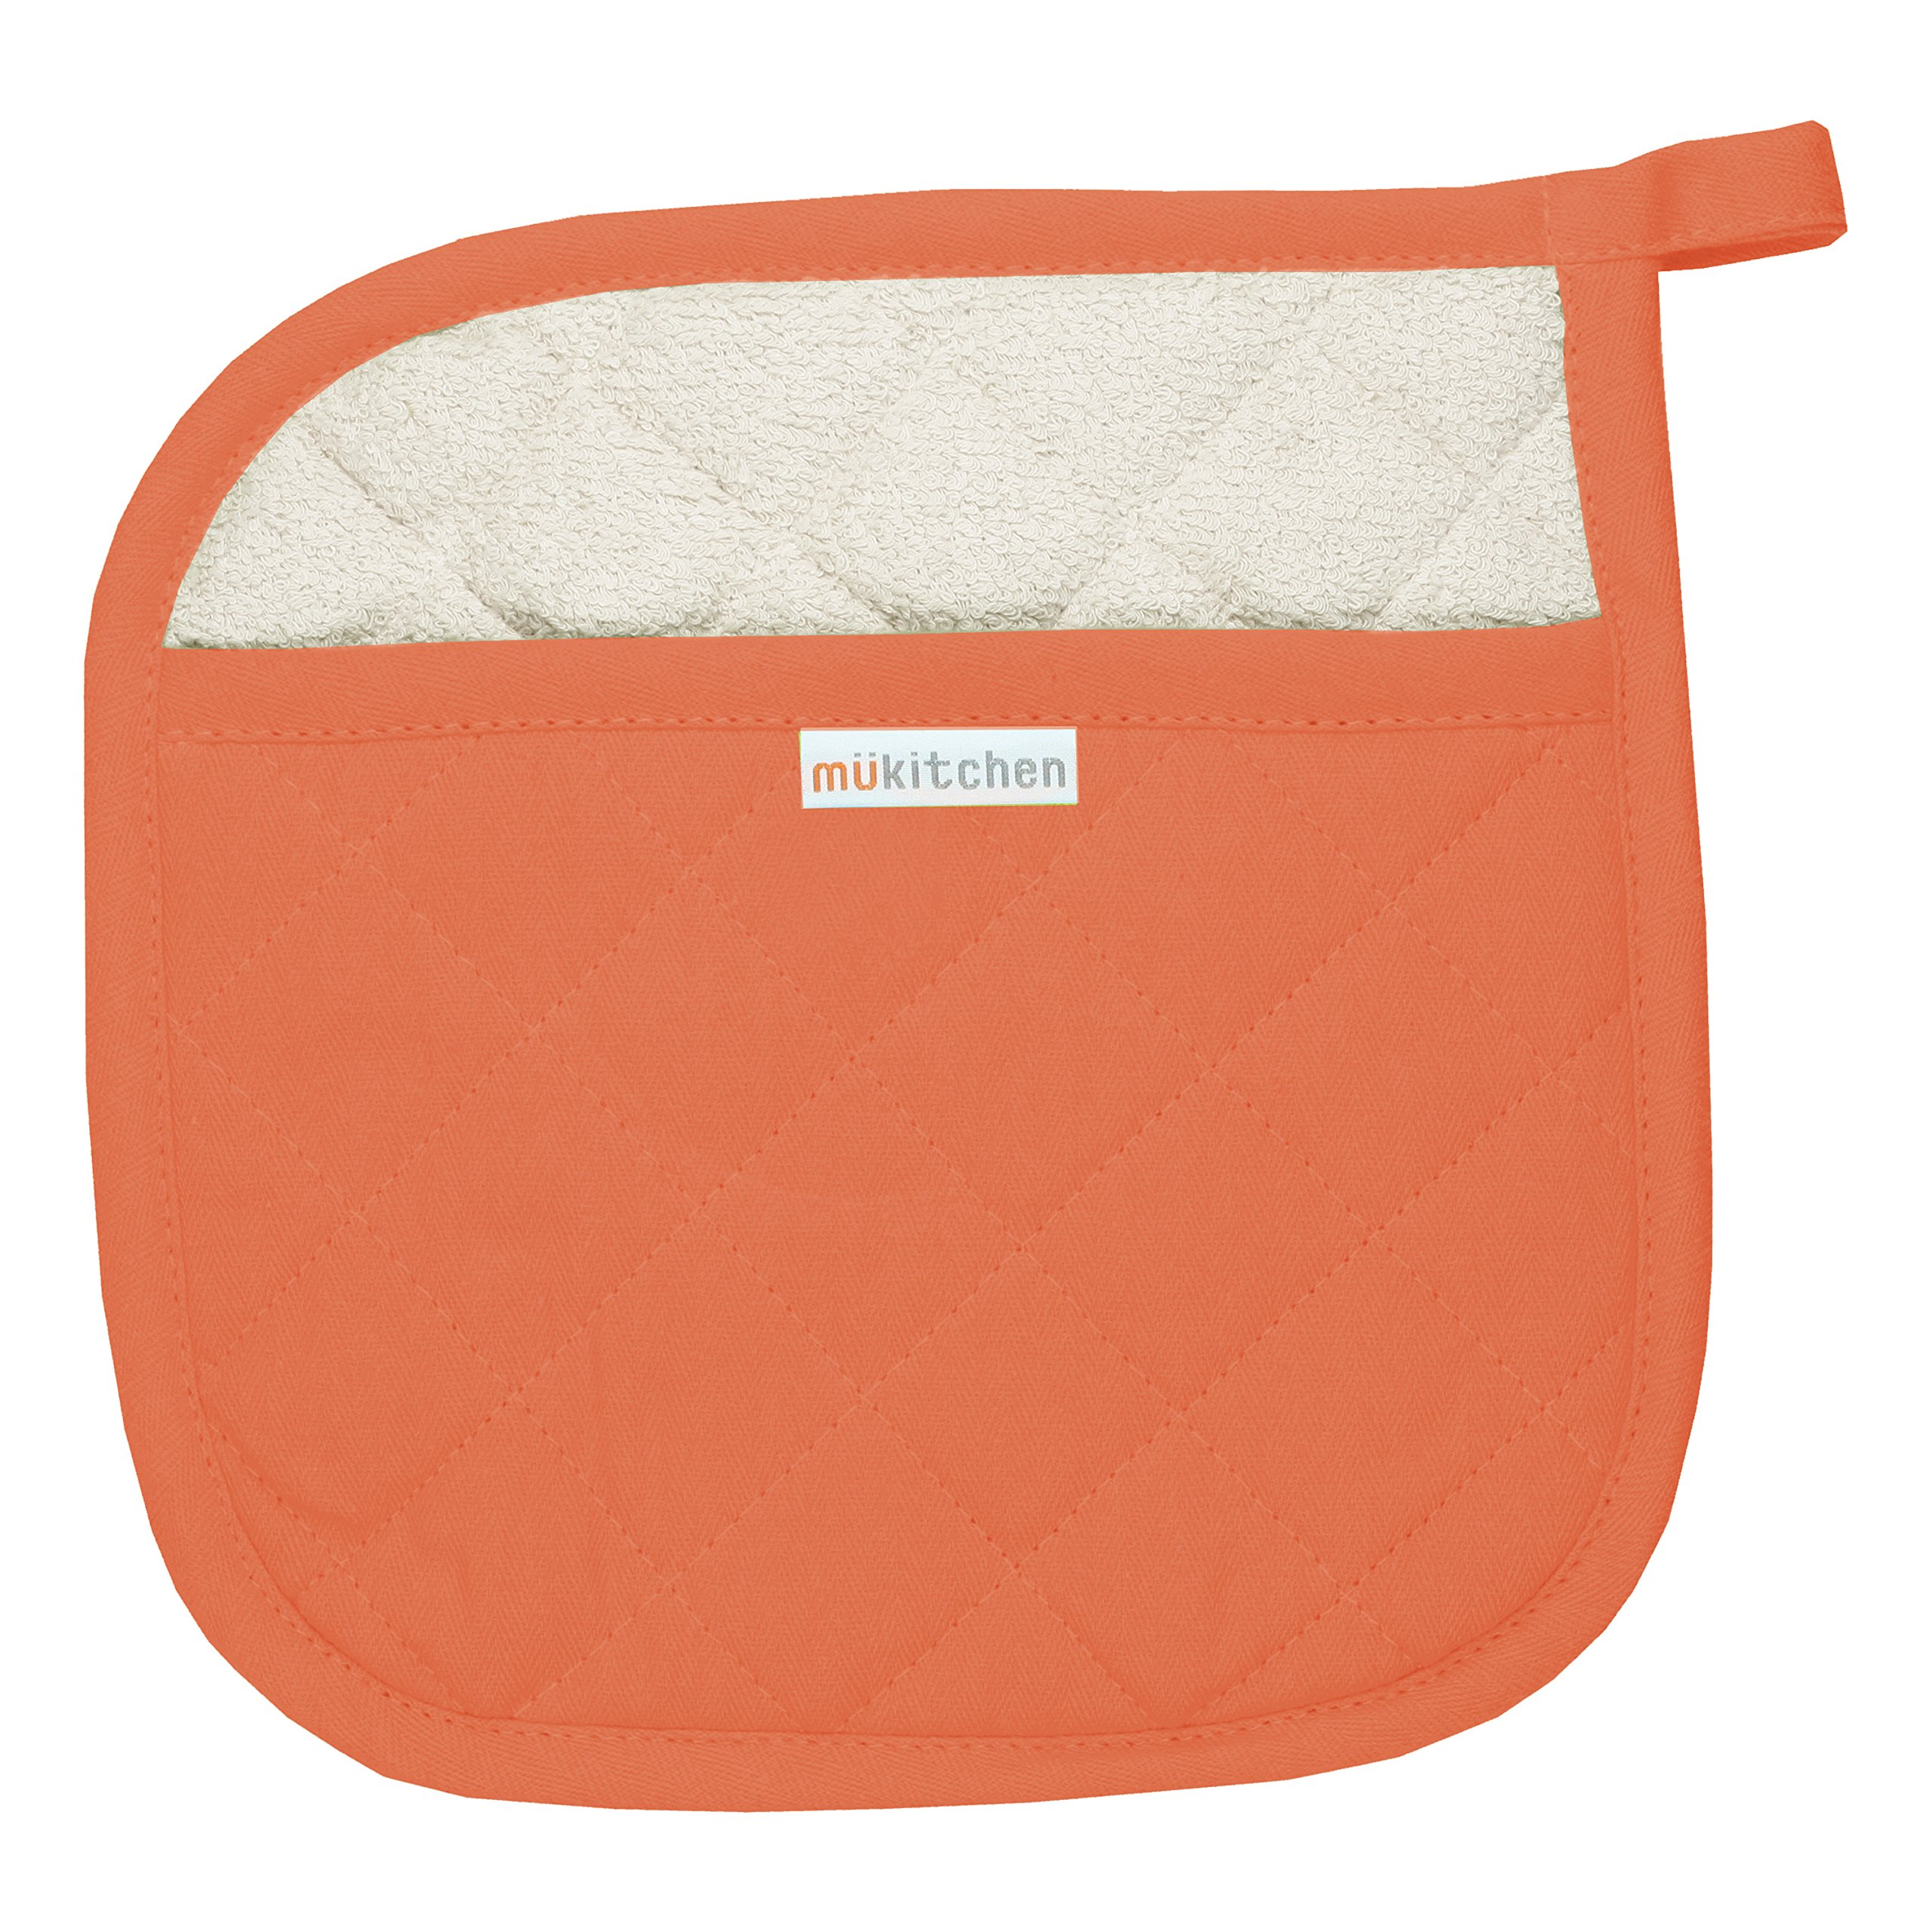 MUkitchen 100% Quilted Cotton Pot Holder, Sea Coral